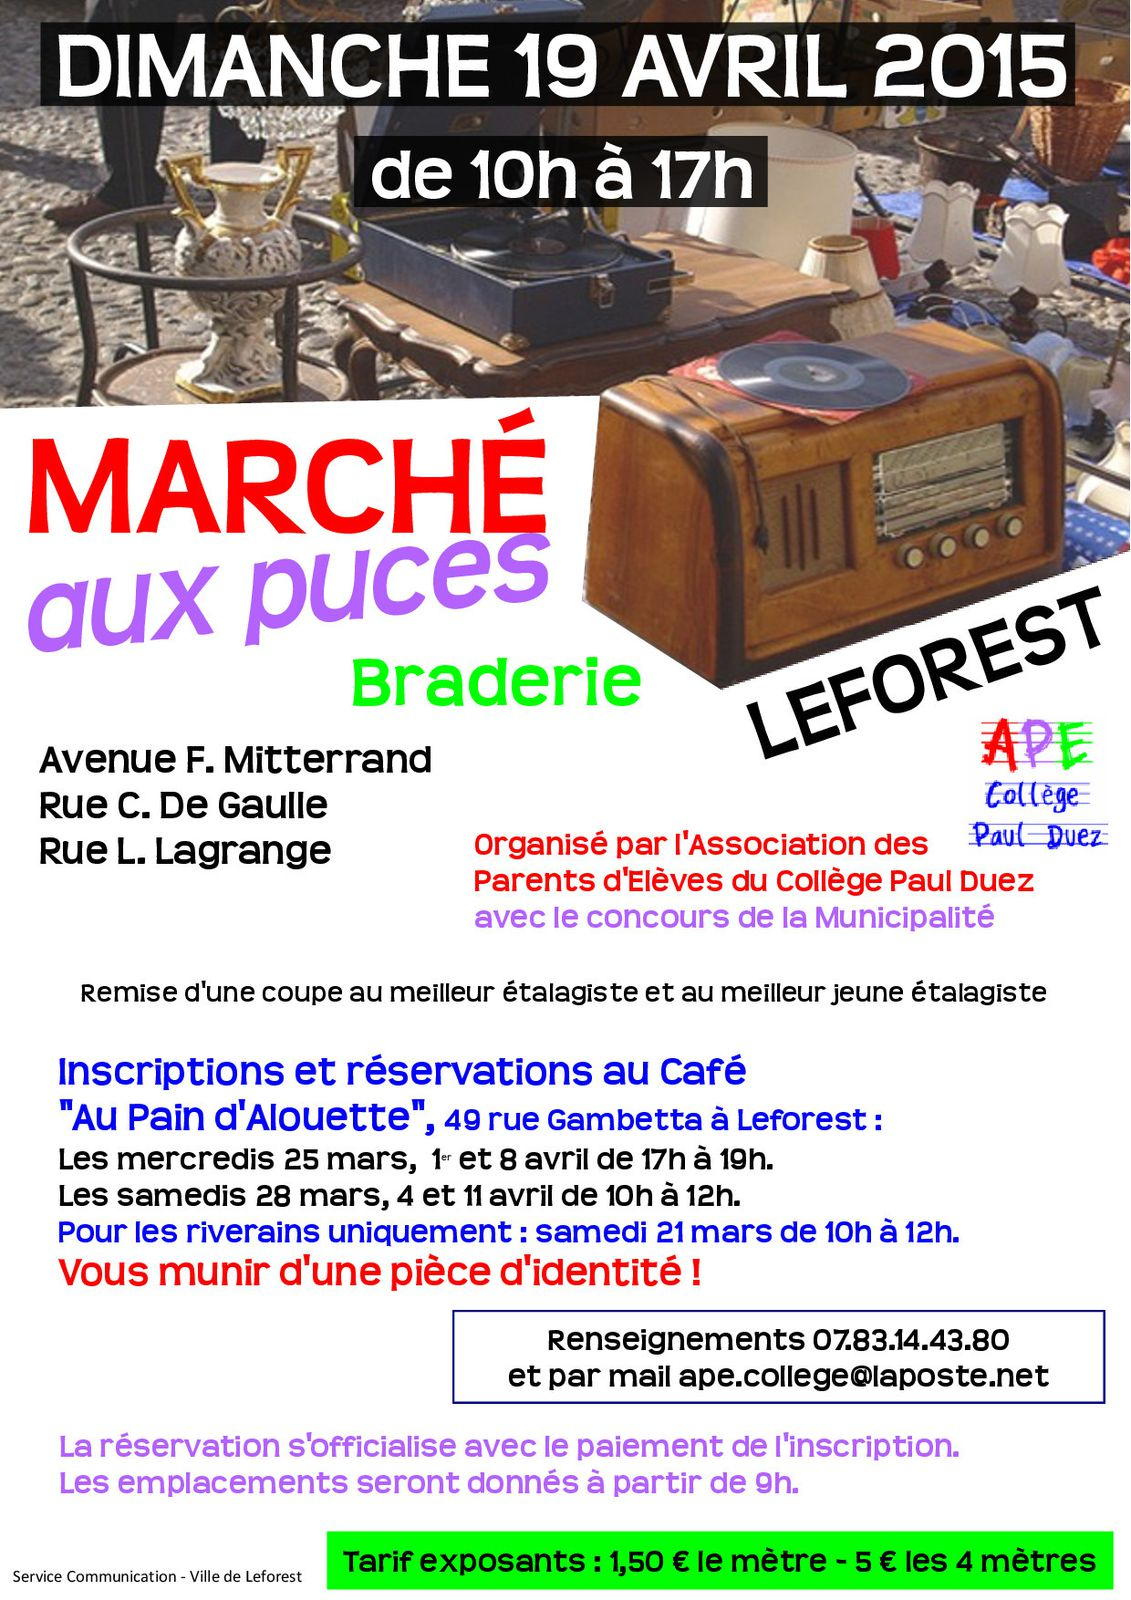 braderie march aux puces 19 avril 2015 leforest 62790 ape college paul duez leforest. Black Bedroom Furniture Sets. Home Design Ideas